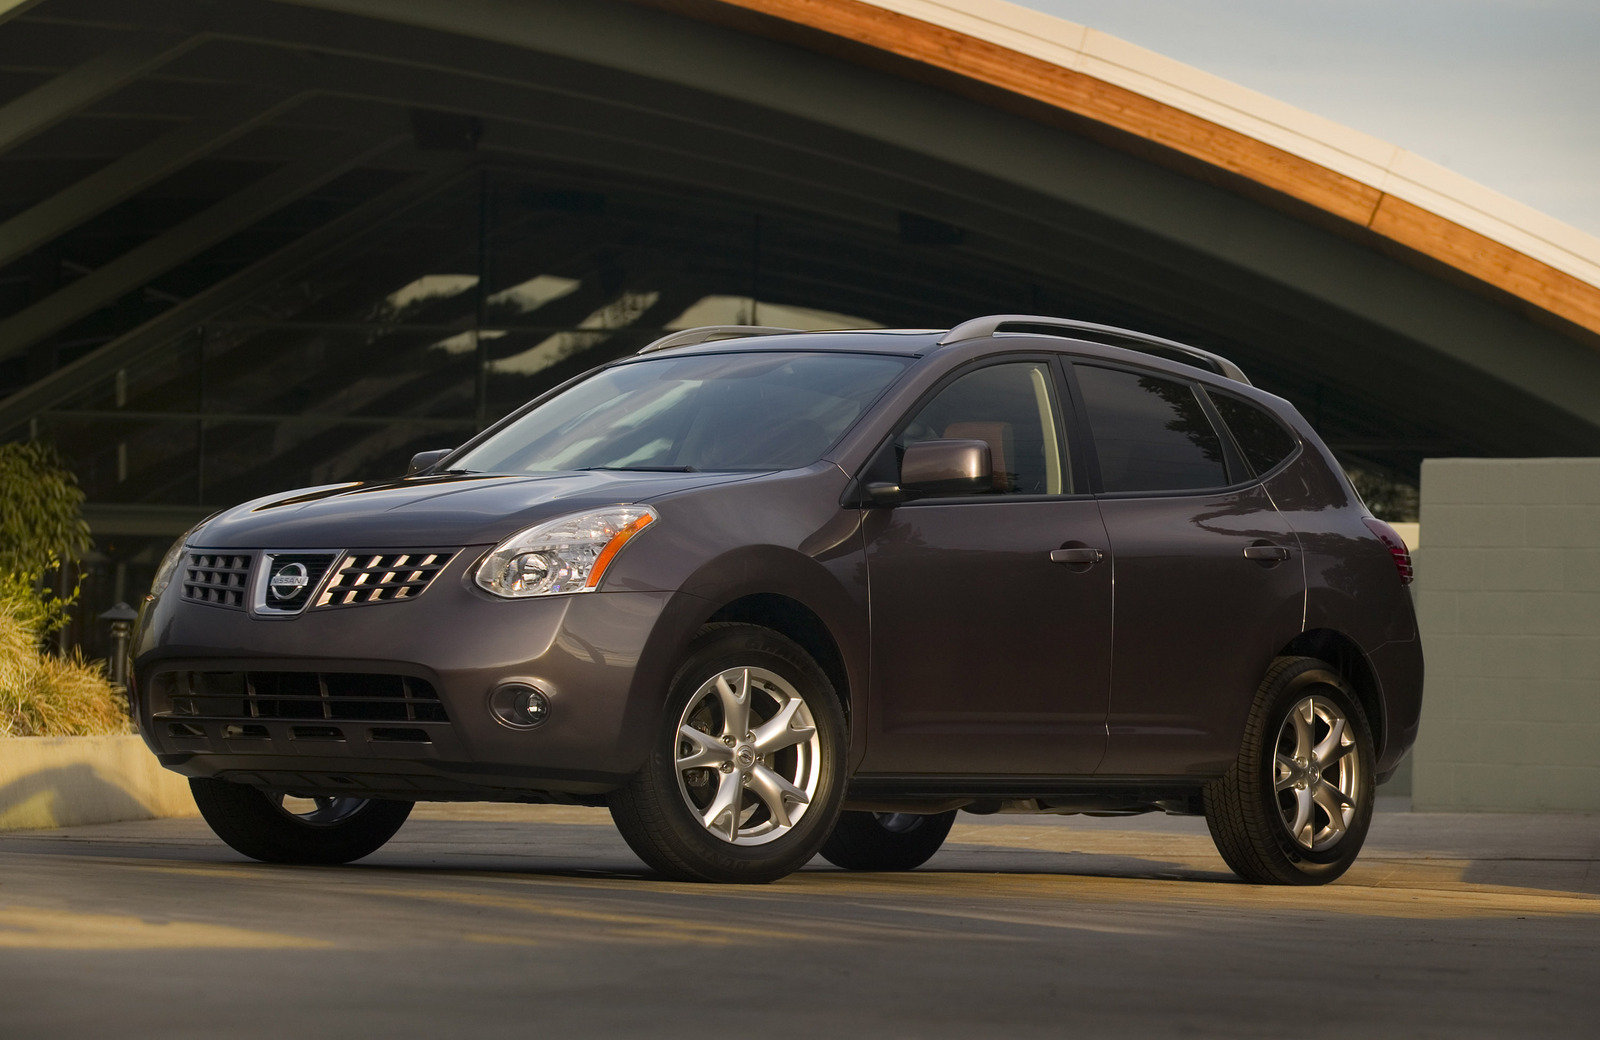 2008 nissan rogue pricing announced picture 199850 car. Black Bedroom Furniture Sets. Home Design Ideas